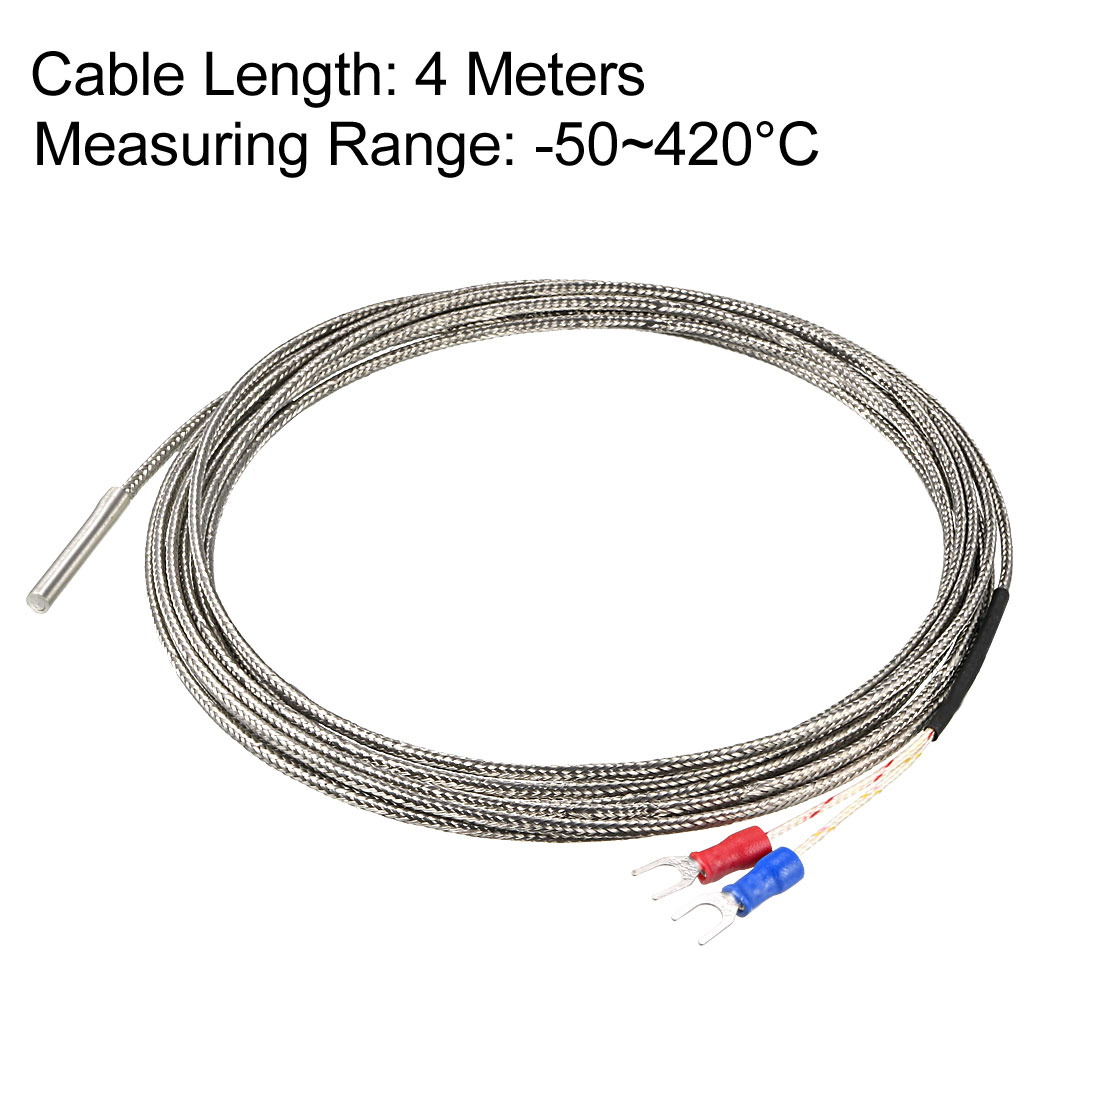 Pt100 Temperature Sensor Probe 4M Cable 4mmx30mm Thermocouple - image 1 of 3